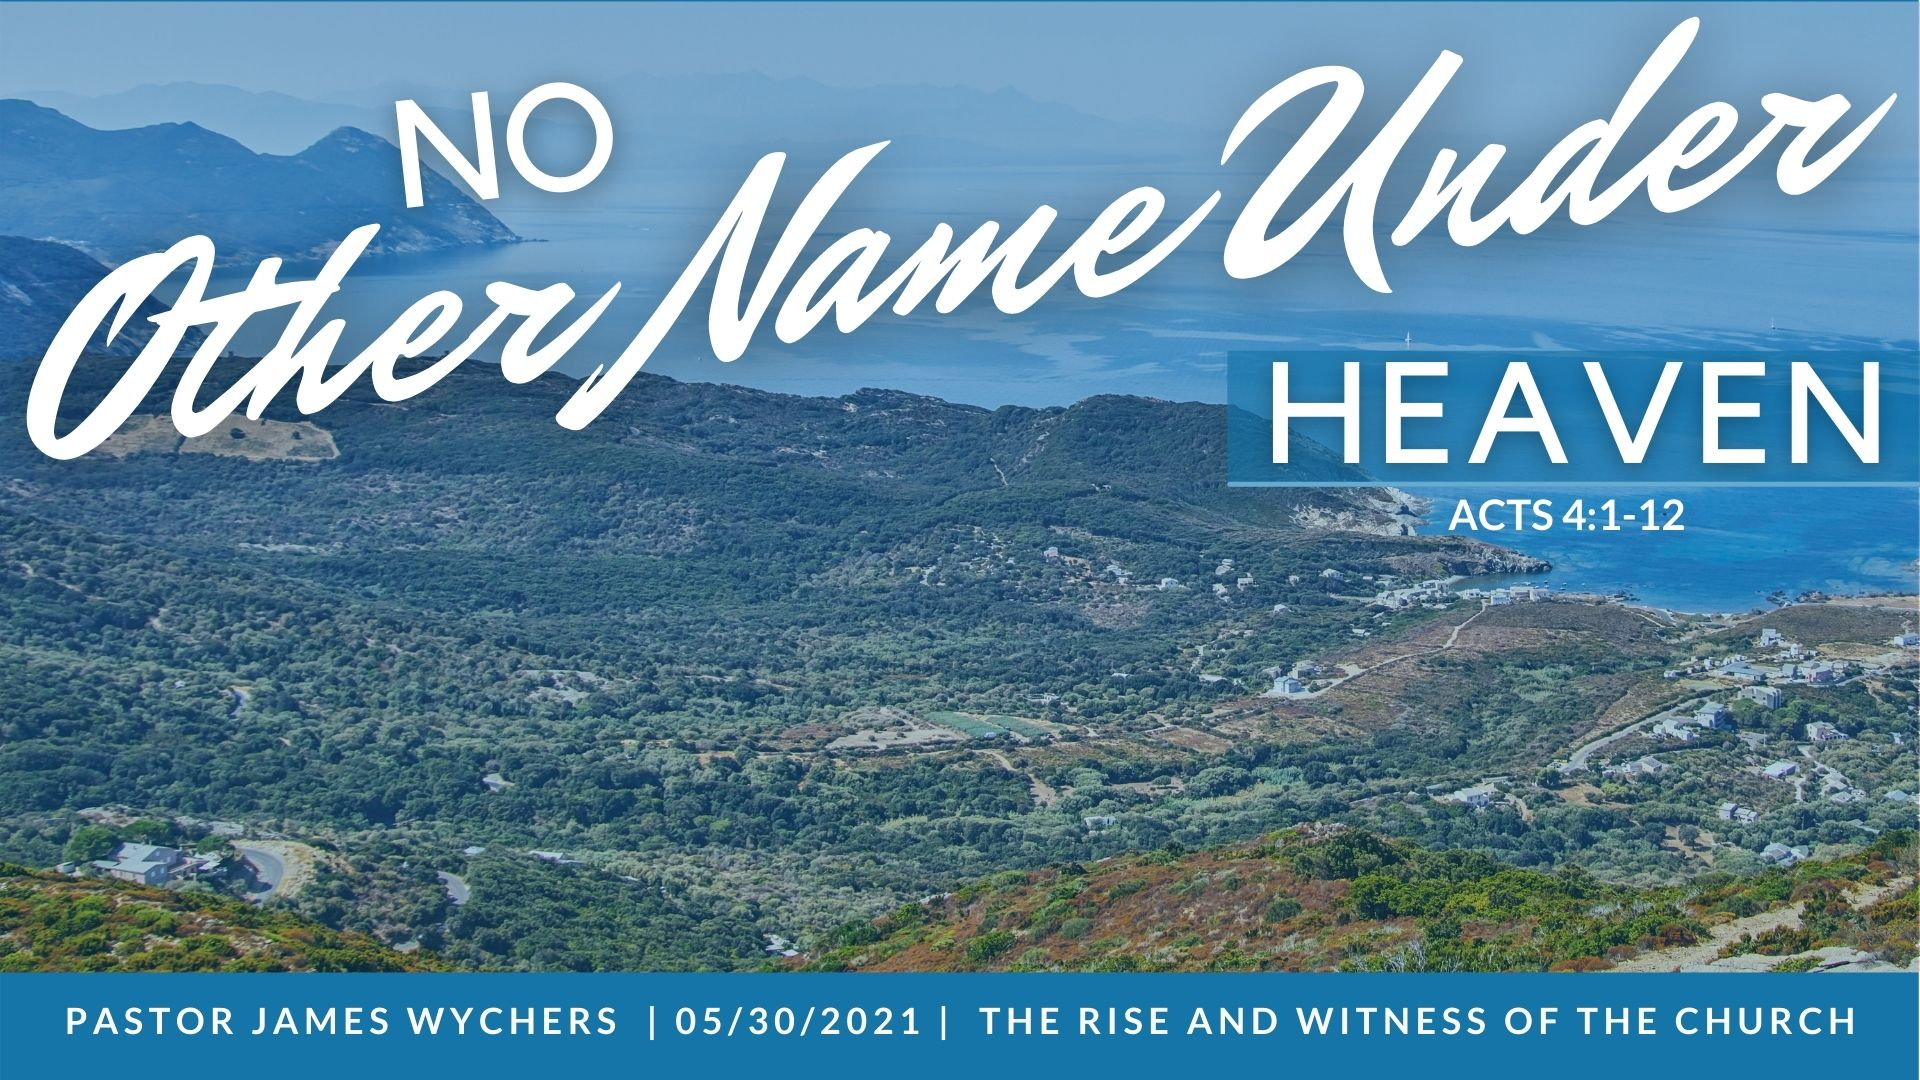 No Other Name Under Heaven _c